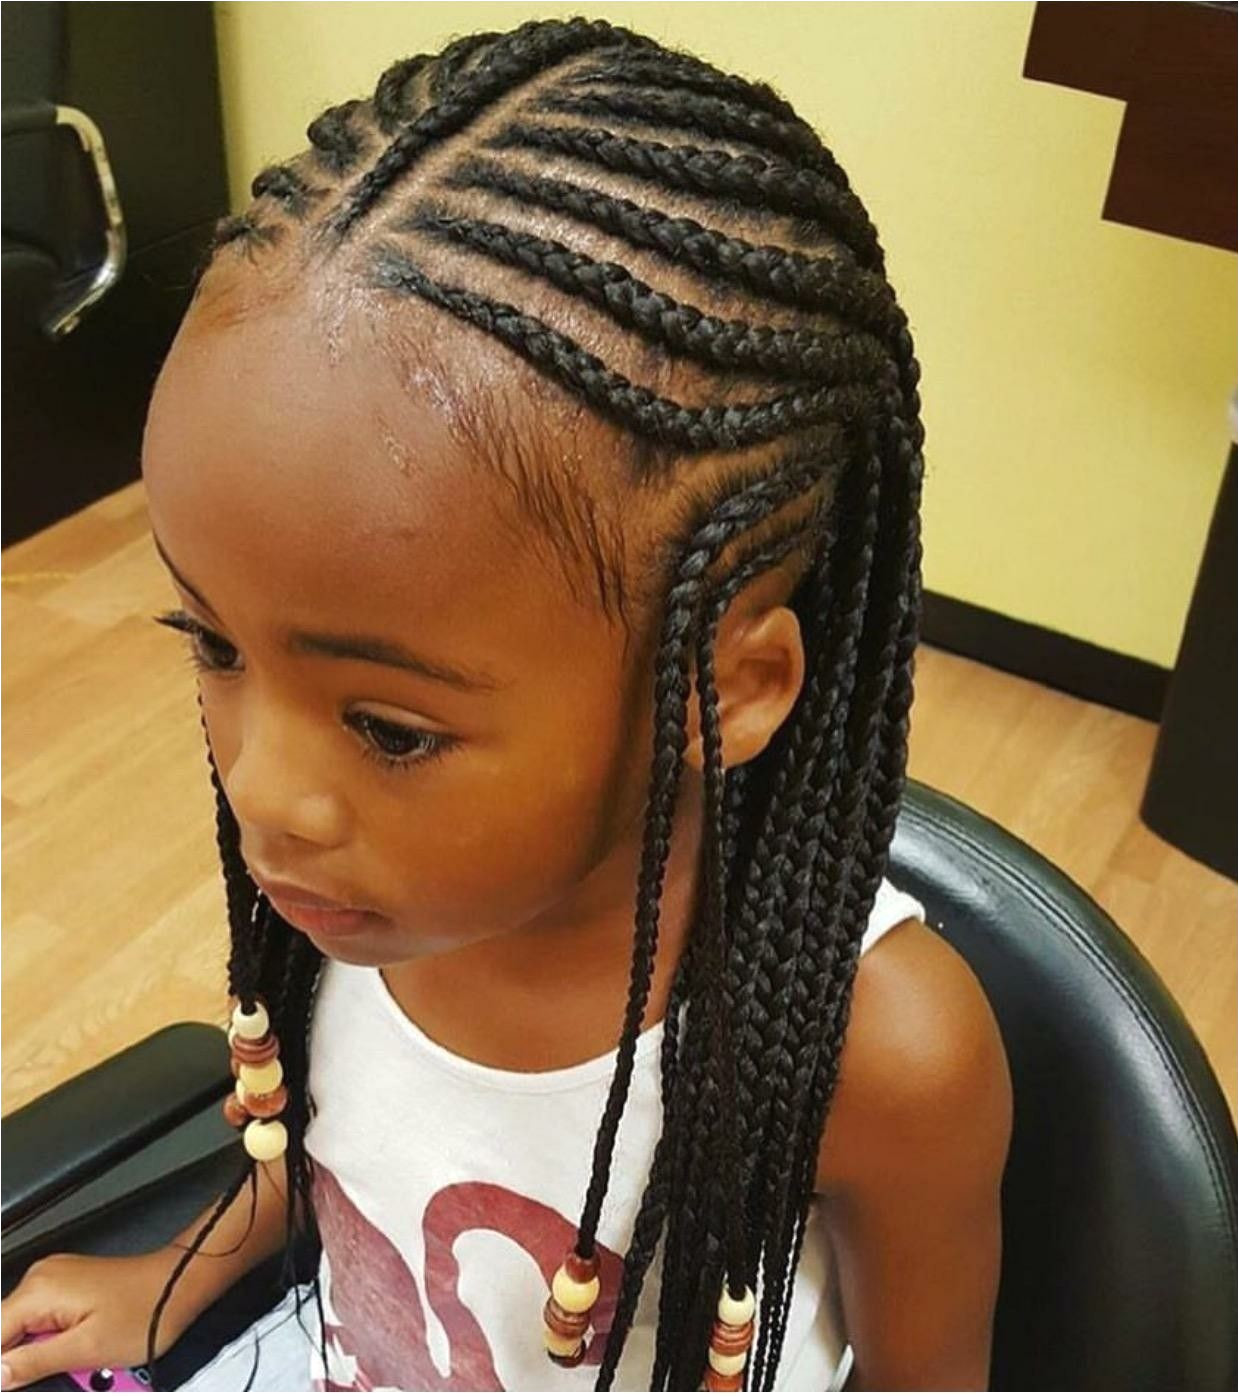 Hairstyles for 10 Year Old Black Girls Best 8 Year Old Black Girl Hairstyles